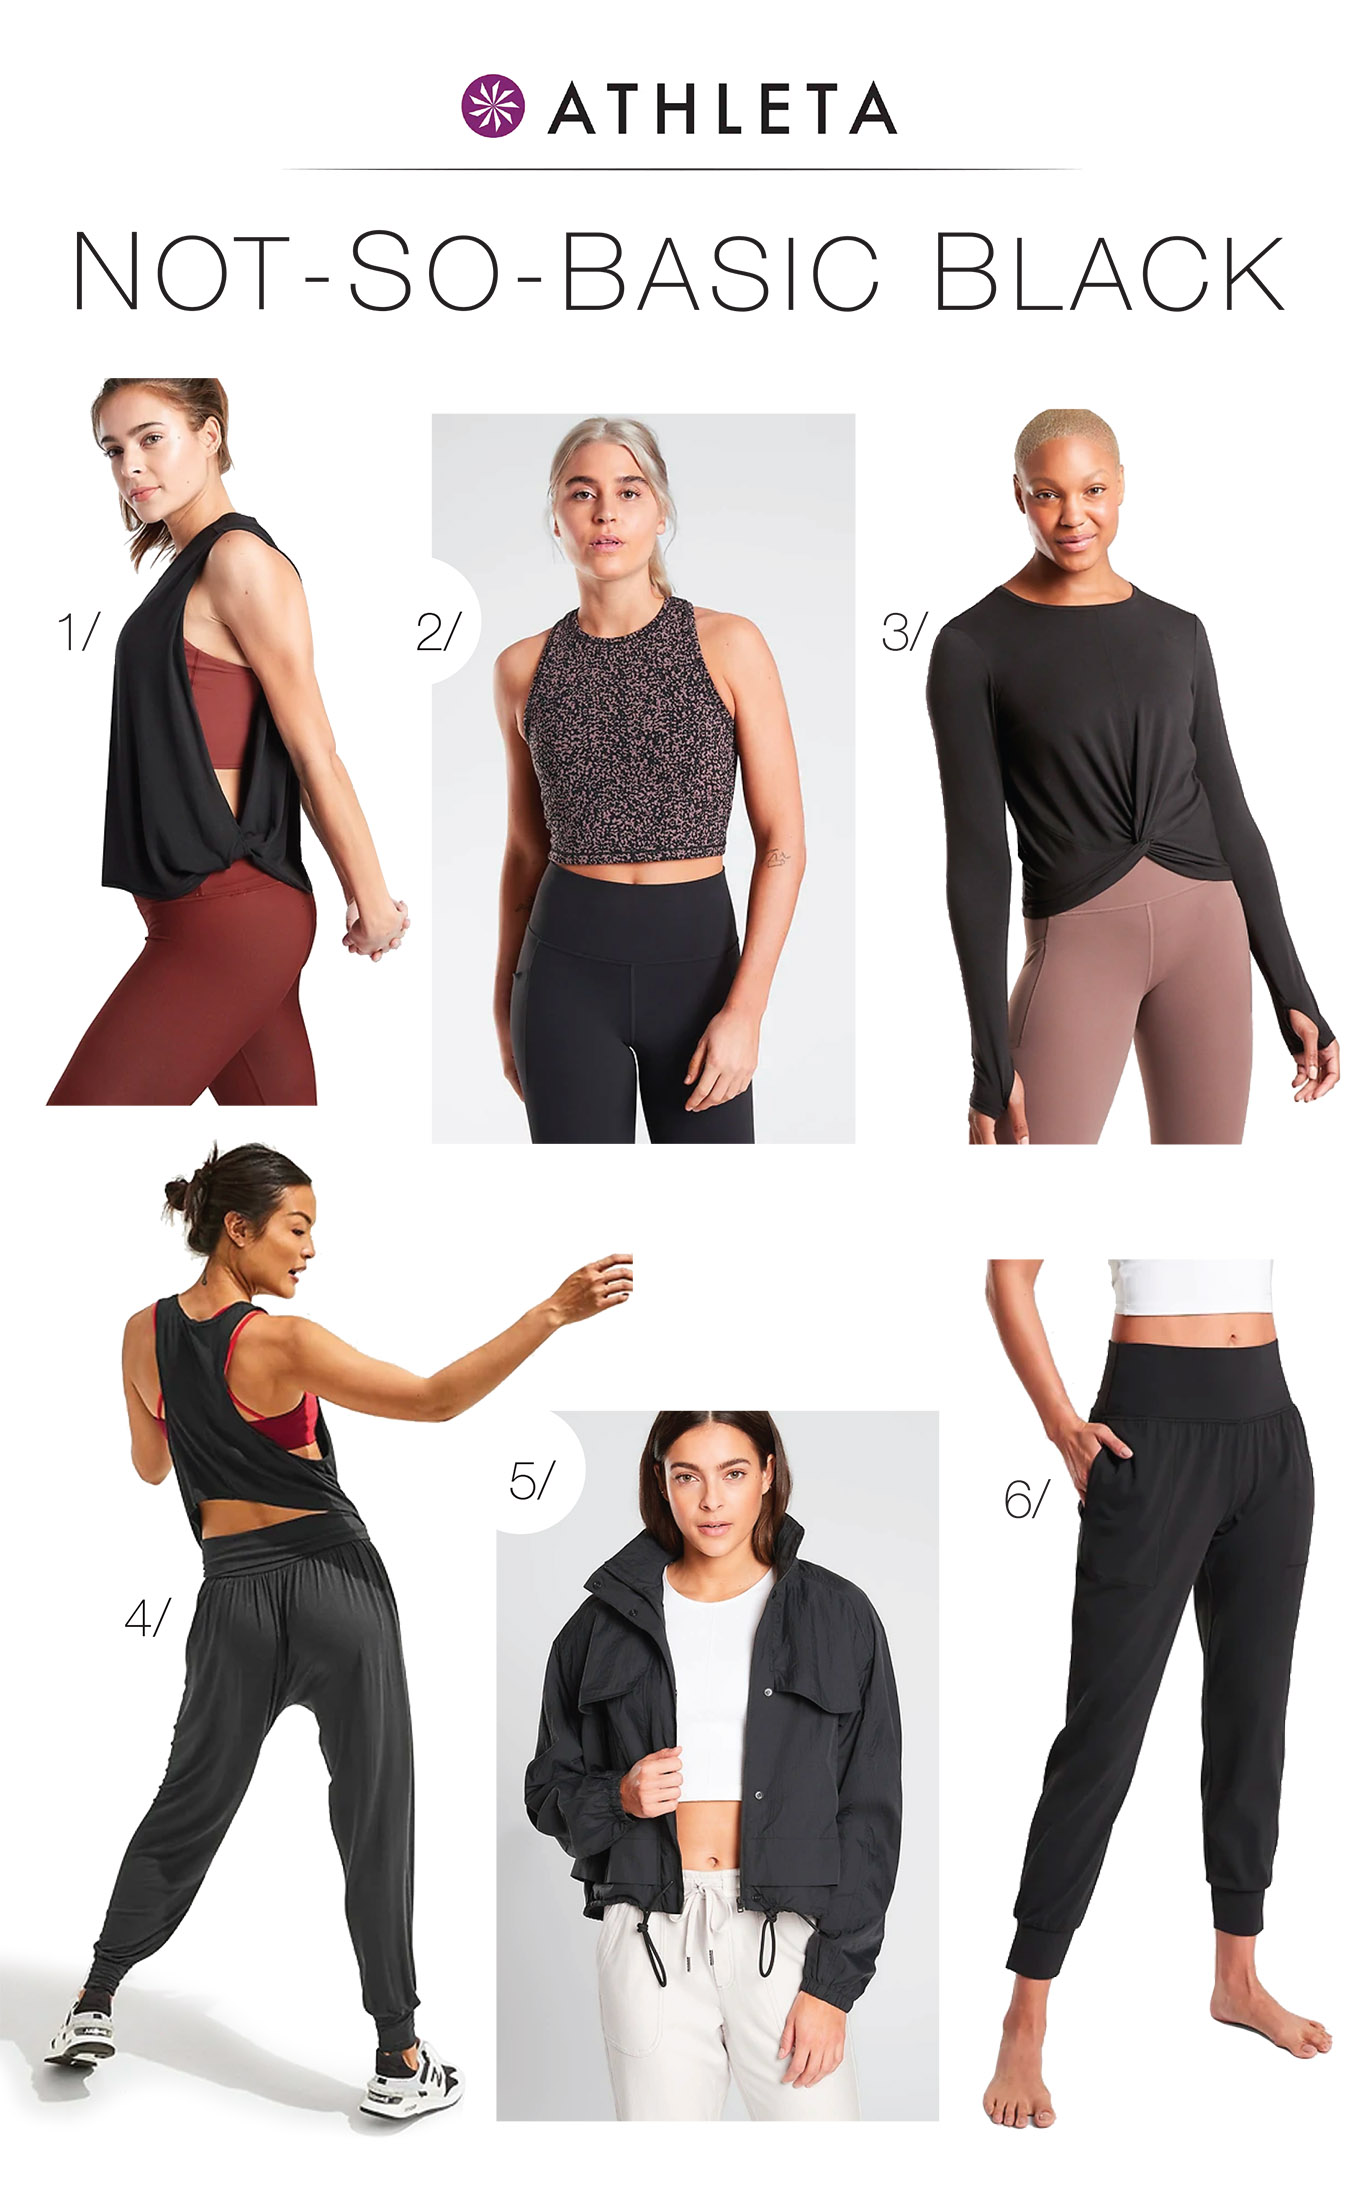 Fresh fitness gear upgrades that aren't old purple sweats?! We're in. Athleta's cute at-home workout outfits take us from yoga to sweaty cardio sessions & beyond.